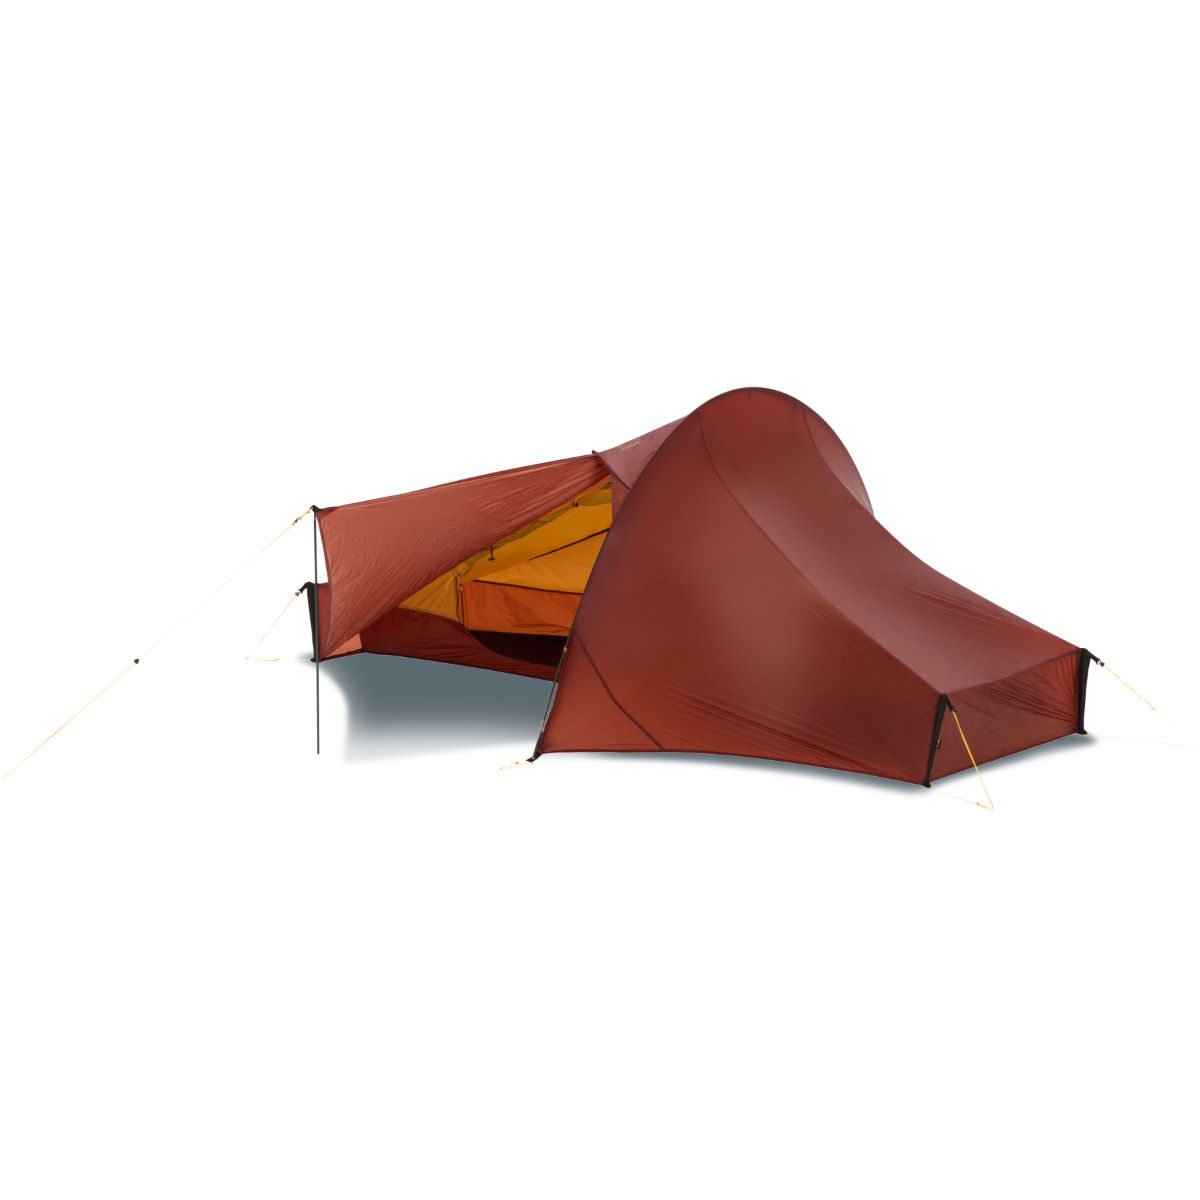 Nordisk Telemark 1 Ultra Light Weight Tent   Tents